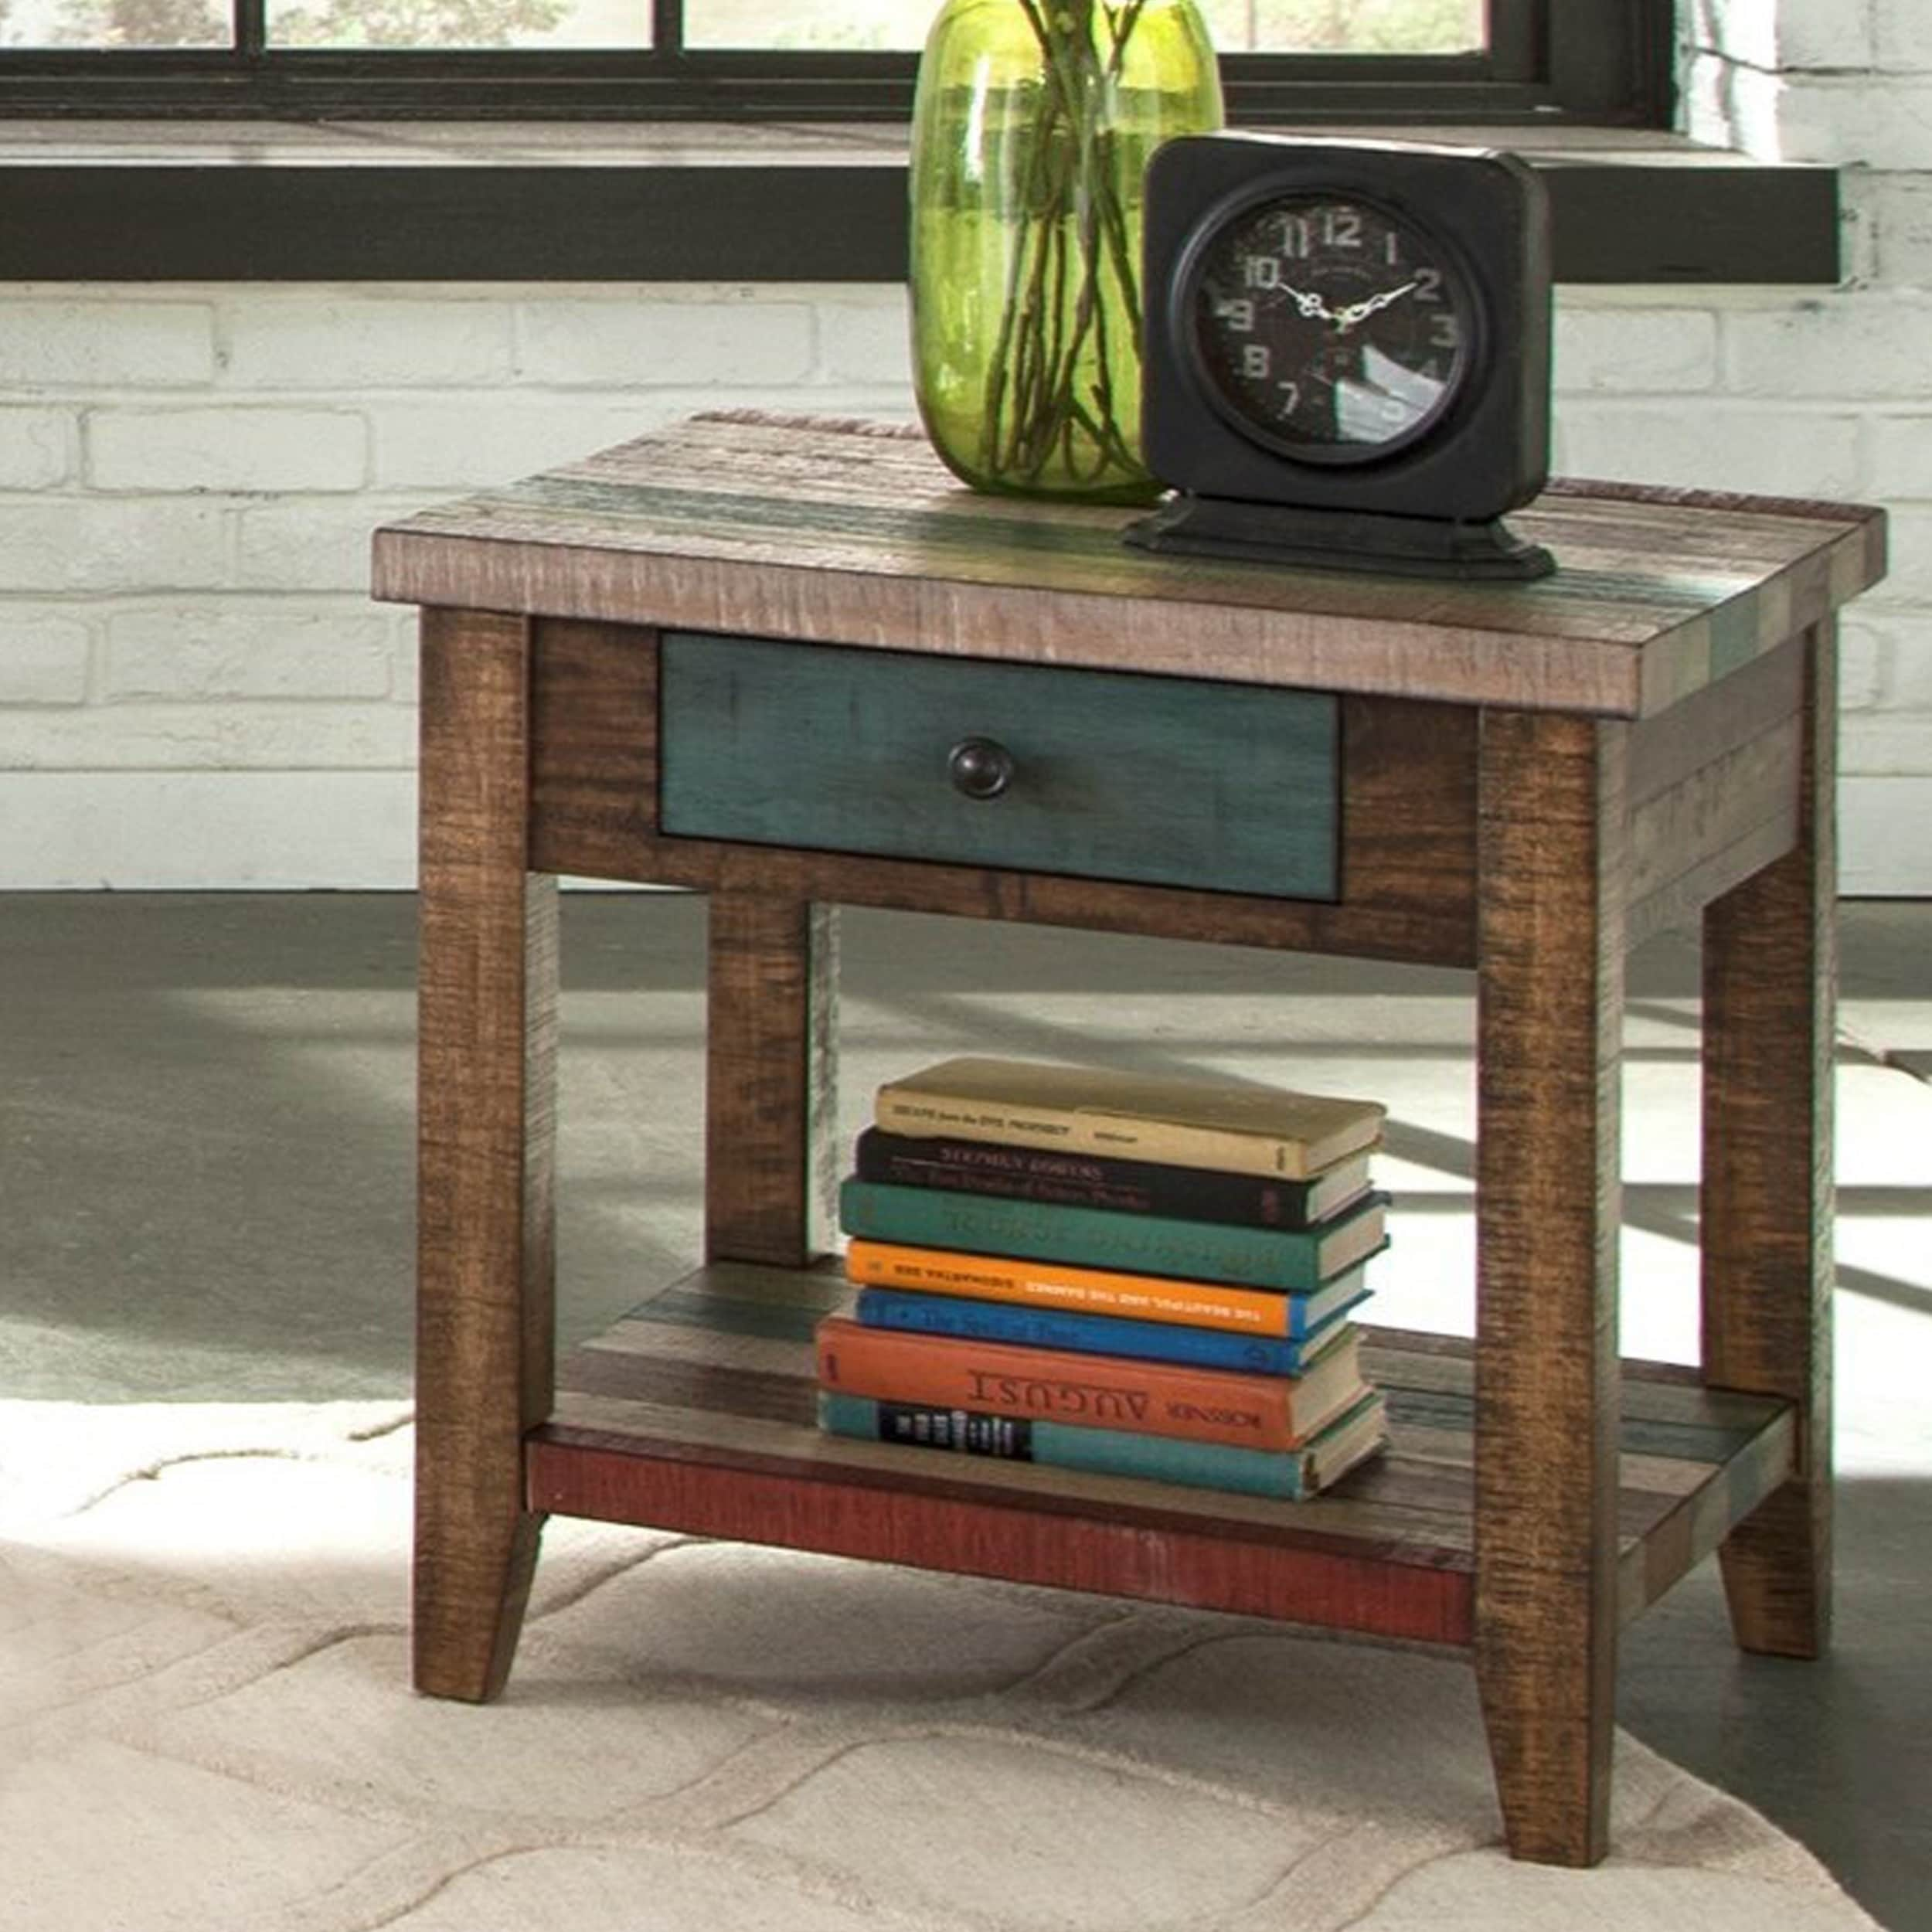 Super Maren Coastal End Table Gmtry Best Dining Table And Chair Ideas Images Gmtryco